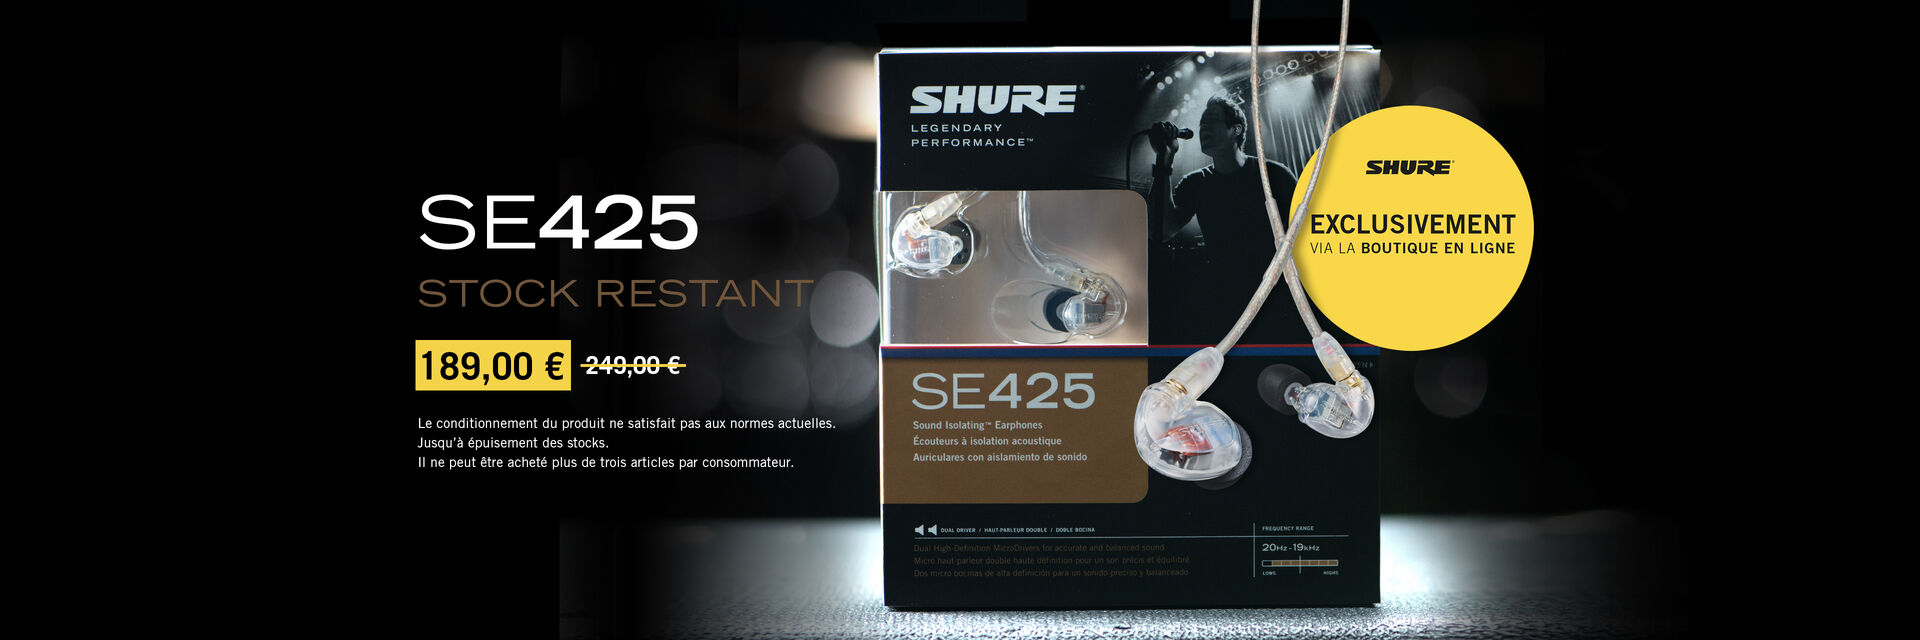 SE425 OP Shure-Shop Slide